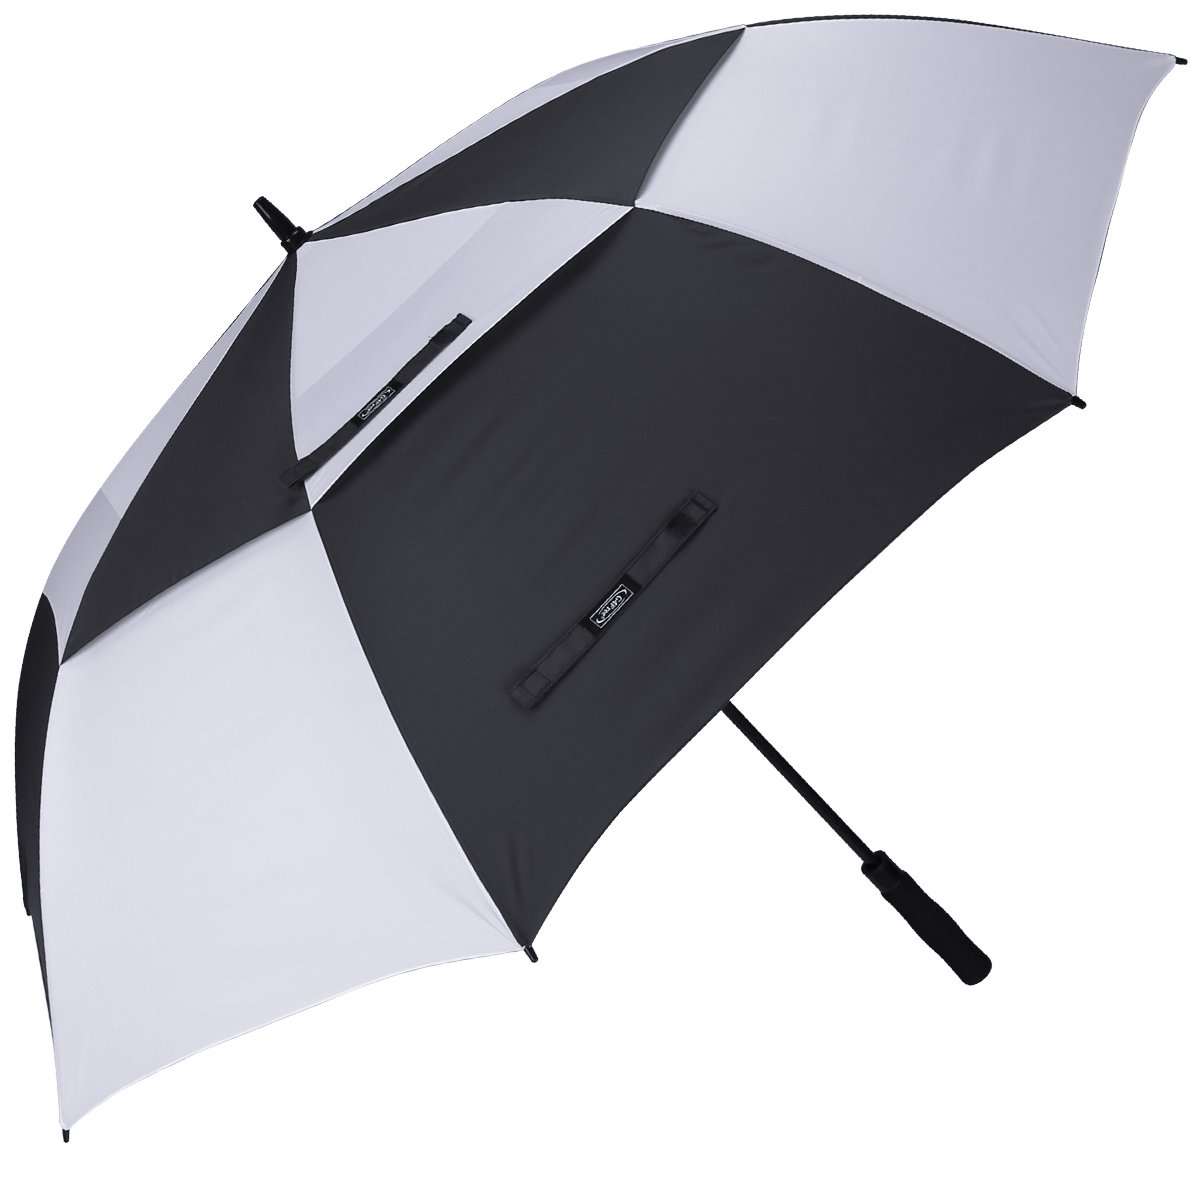 G4Free 68 Inch Automatic Open Golf Umbrella Double Canopy Extra Large Oversize Windproof Waterproof Stick Umbrellas(Black/White) by G4Free